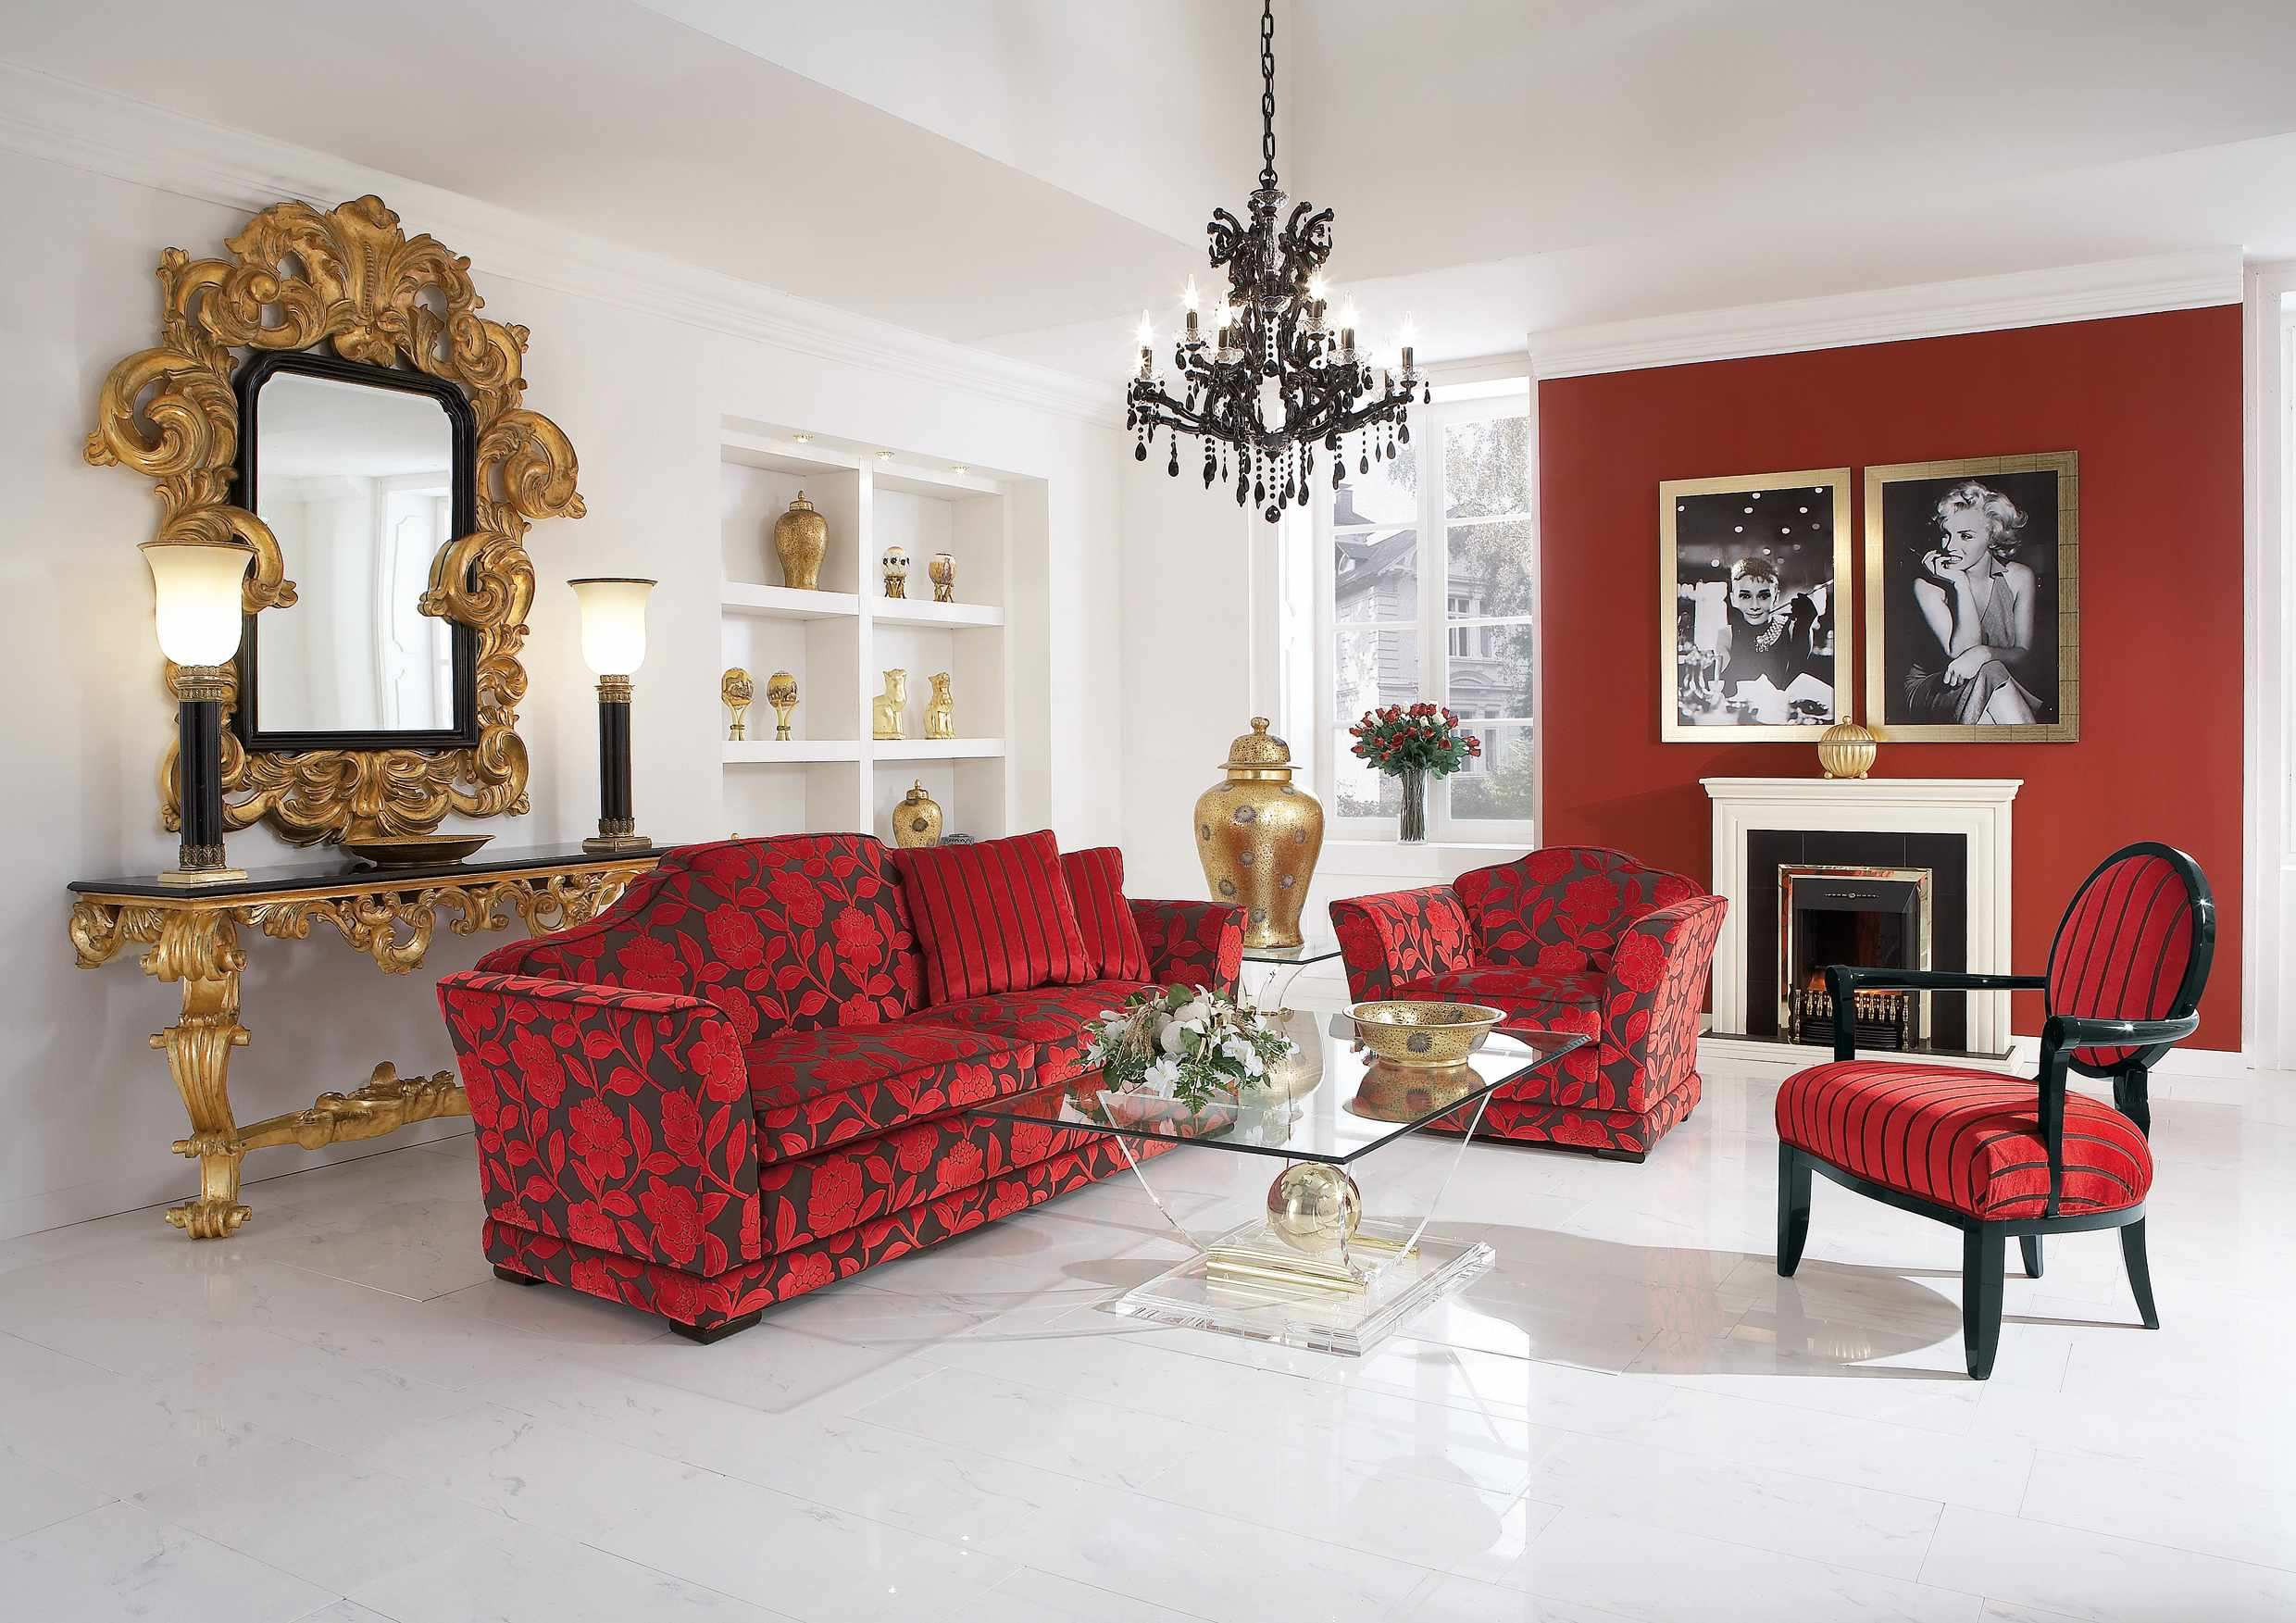 Living Room Marvellous Red Black And White Living Room Decorating within 15 Genius Concepts of How to Upgrade Red Black And White Living Room Set